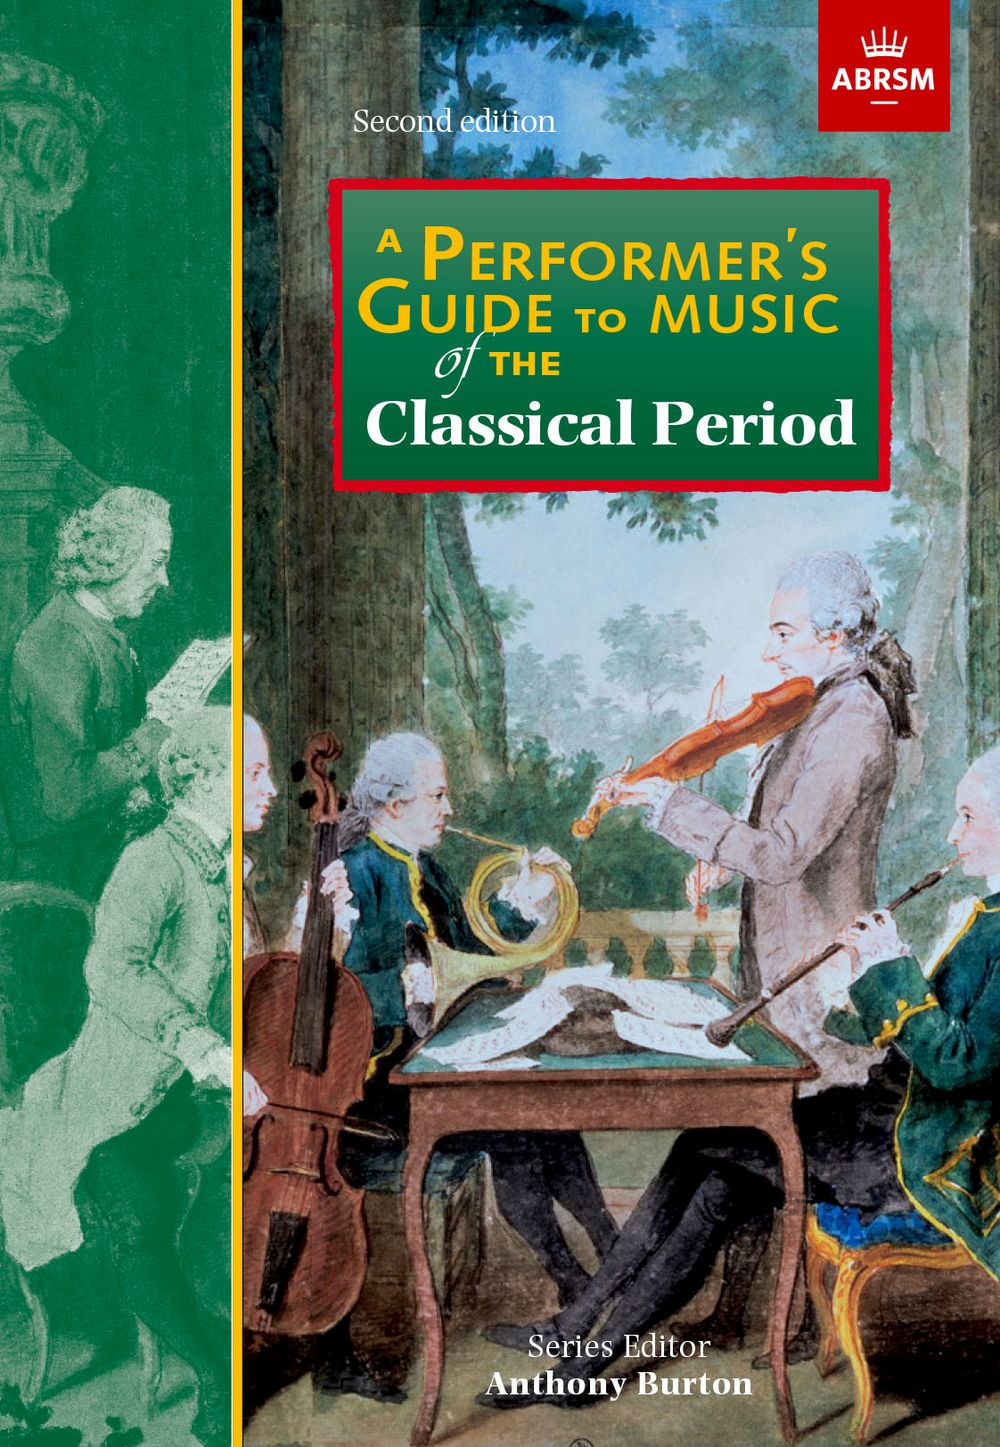 A Performer's Guide to Music of the Classical Period: Second edition (Performer's Guides (ABRSM))